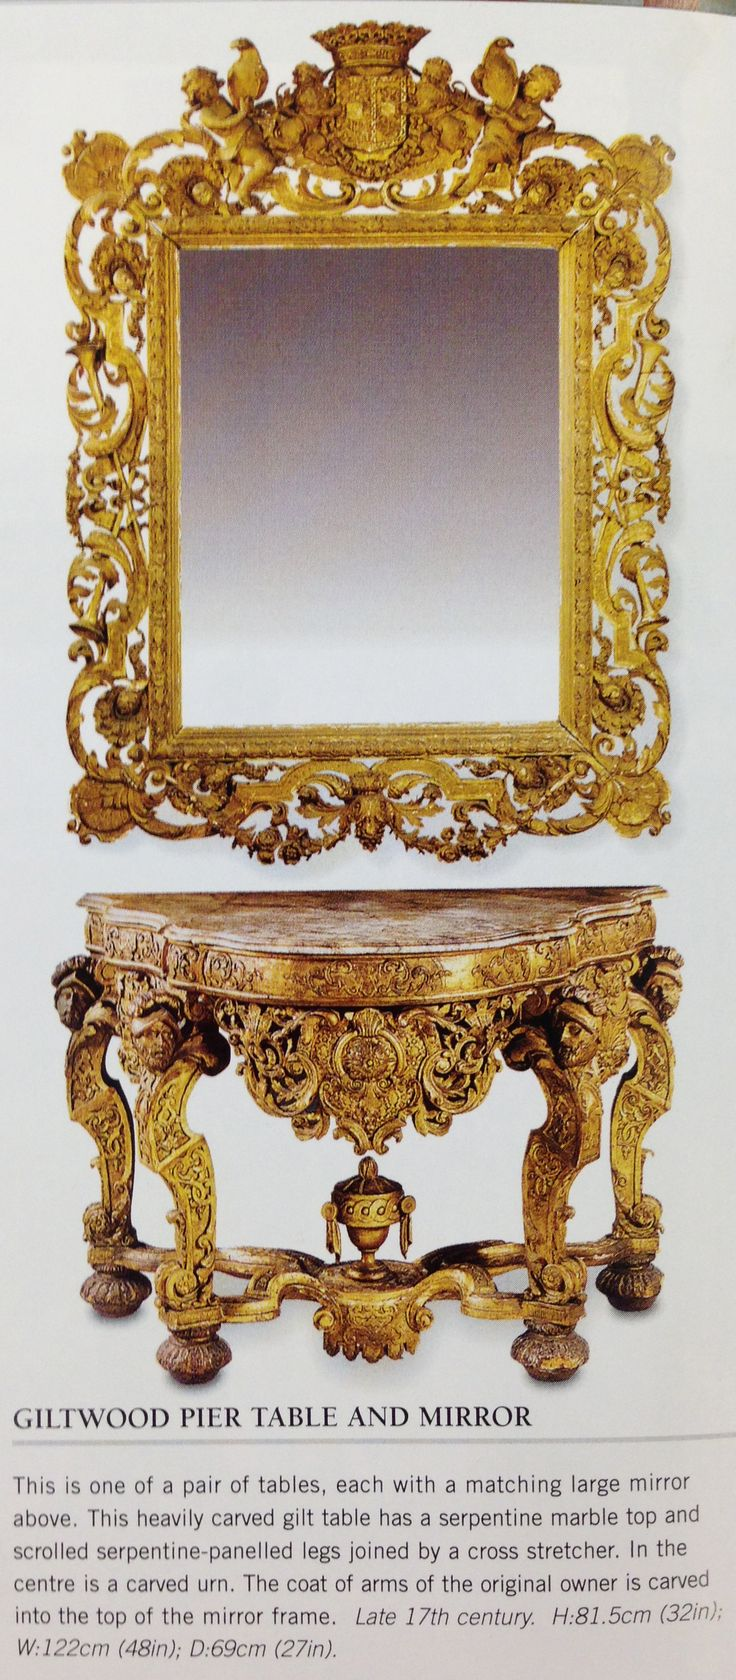 Giltwood pier table and mirror baroque late 17th century for 17th century mirrors